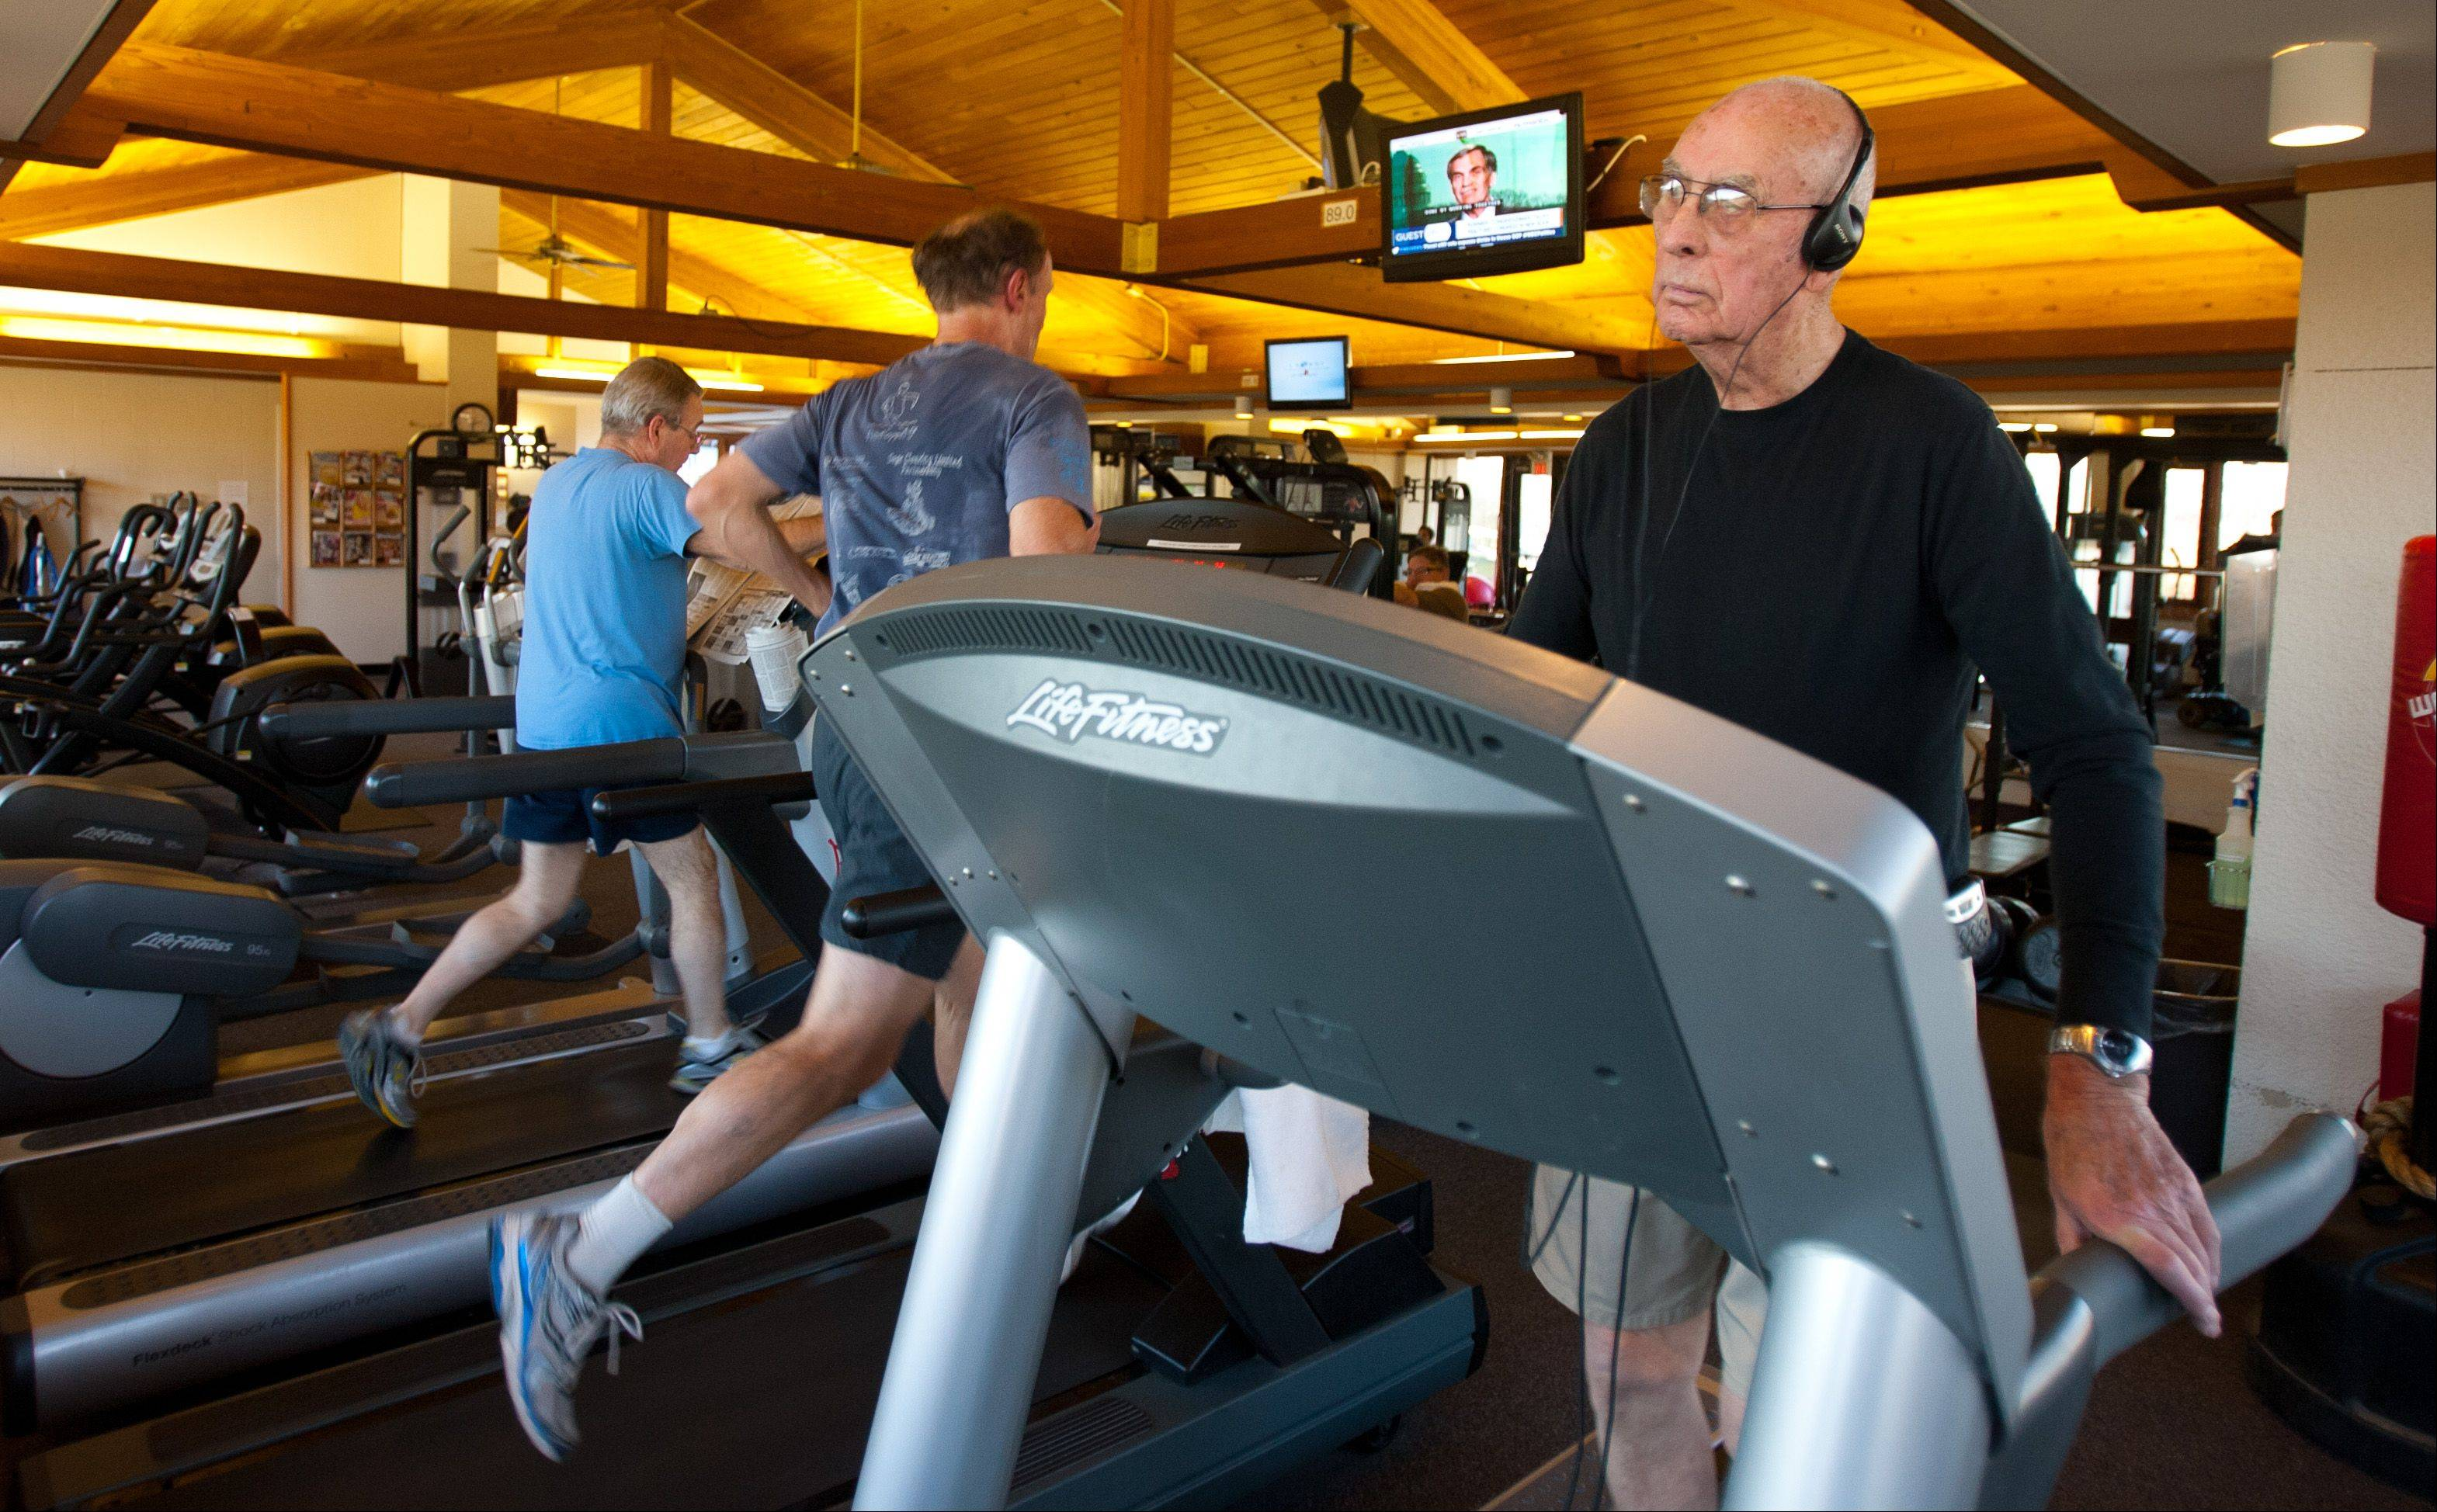 Wearing headphones, 90-year-old Charles Fultz does 35 minutes on the treadmill during his 1�-hour workout.